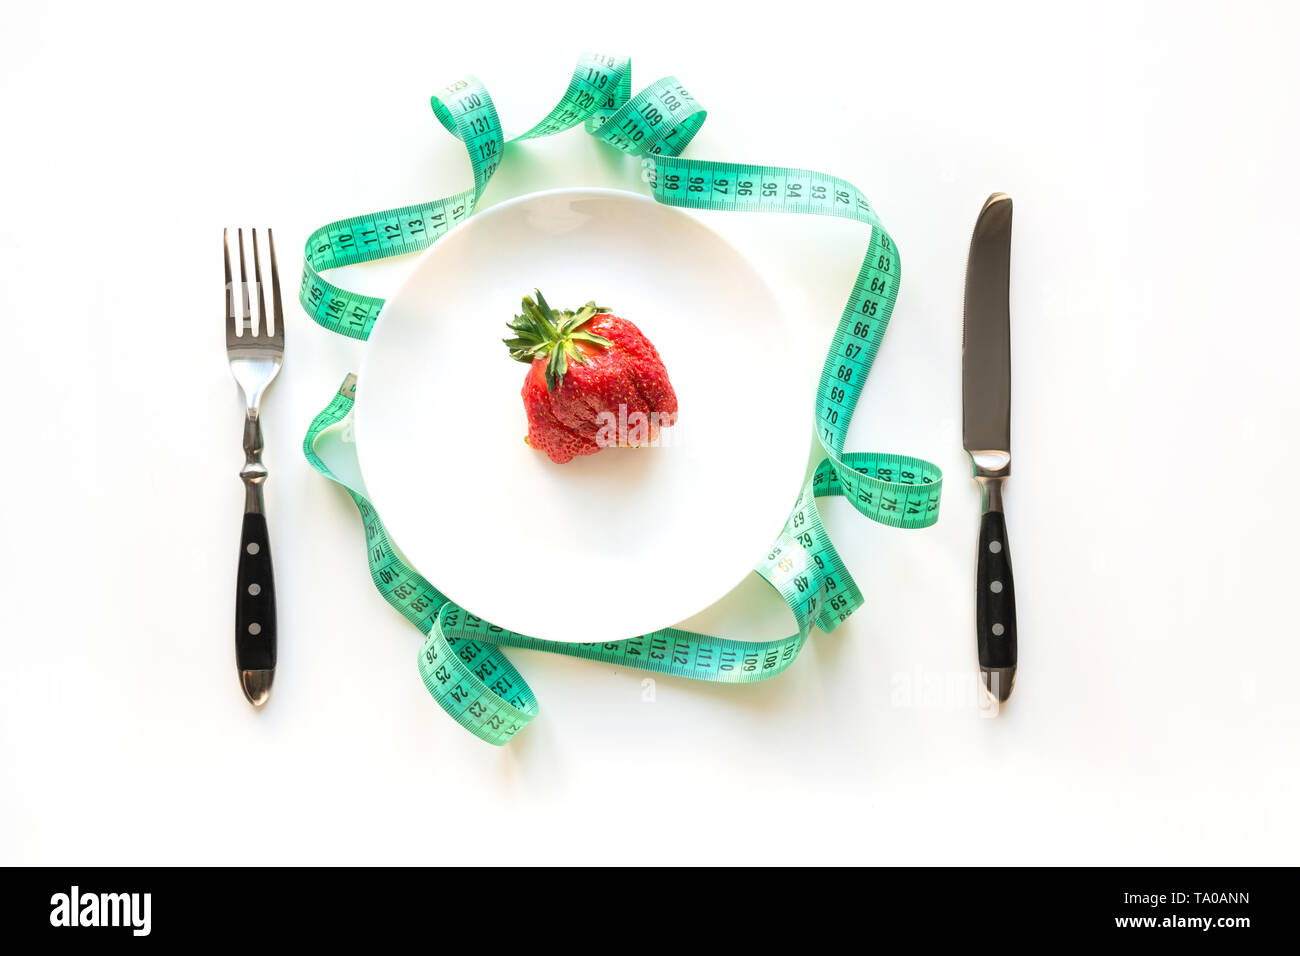 White table setting with tape measure and one organic ugly strawberry. Concept weight loss for Detox. View from above. - Stock Image